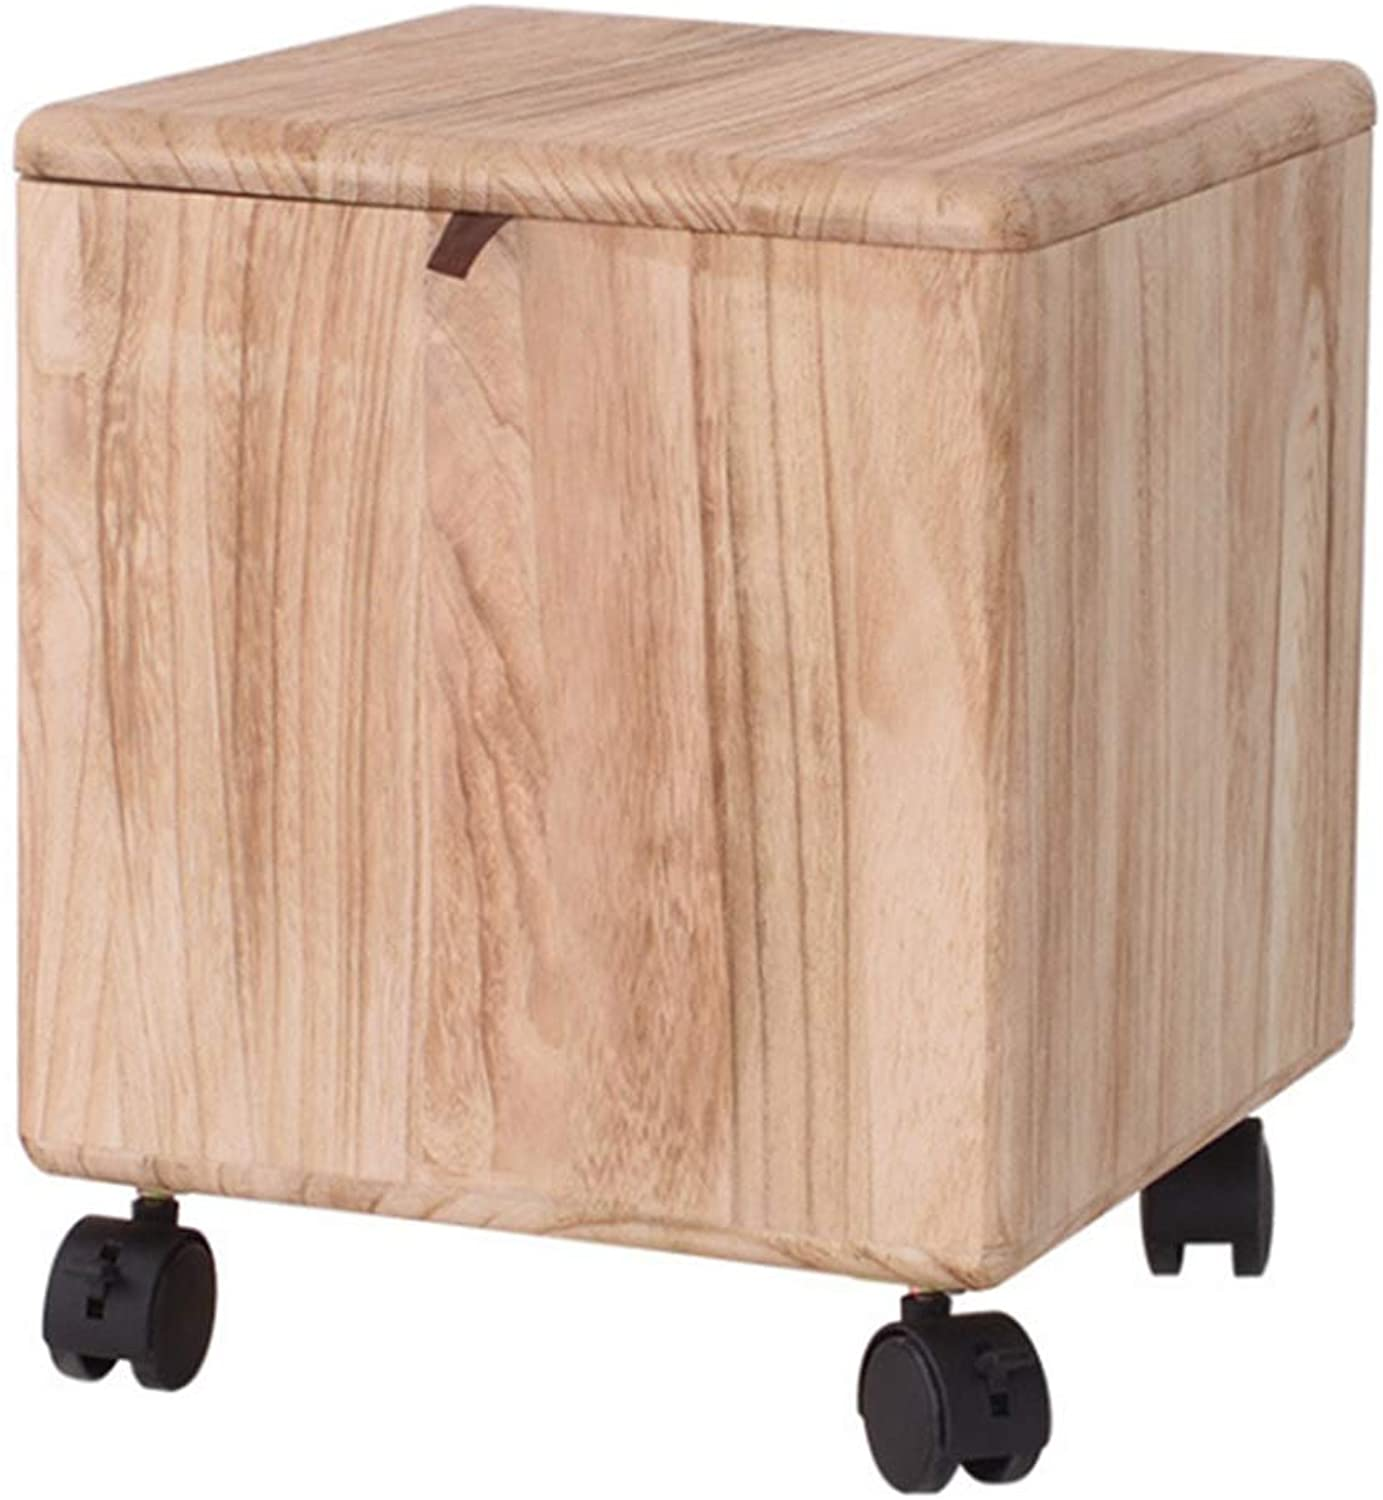 Square Stool Multifunctional Storage Stool Creative Solid Wood shoes Bench with Pulley Sofa Stool Makeup Stool WEIYV (color   Wood-color, Size   28  28  33cm)